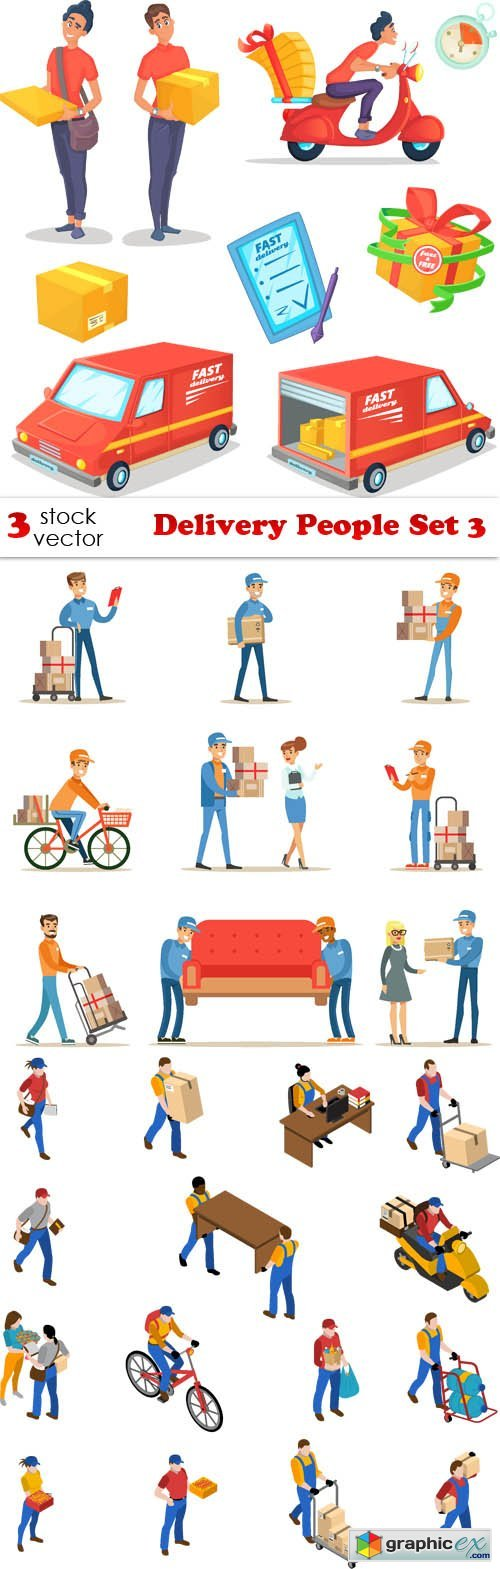 Delivery People Set 3